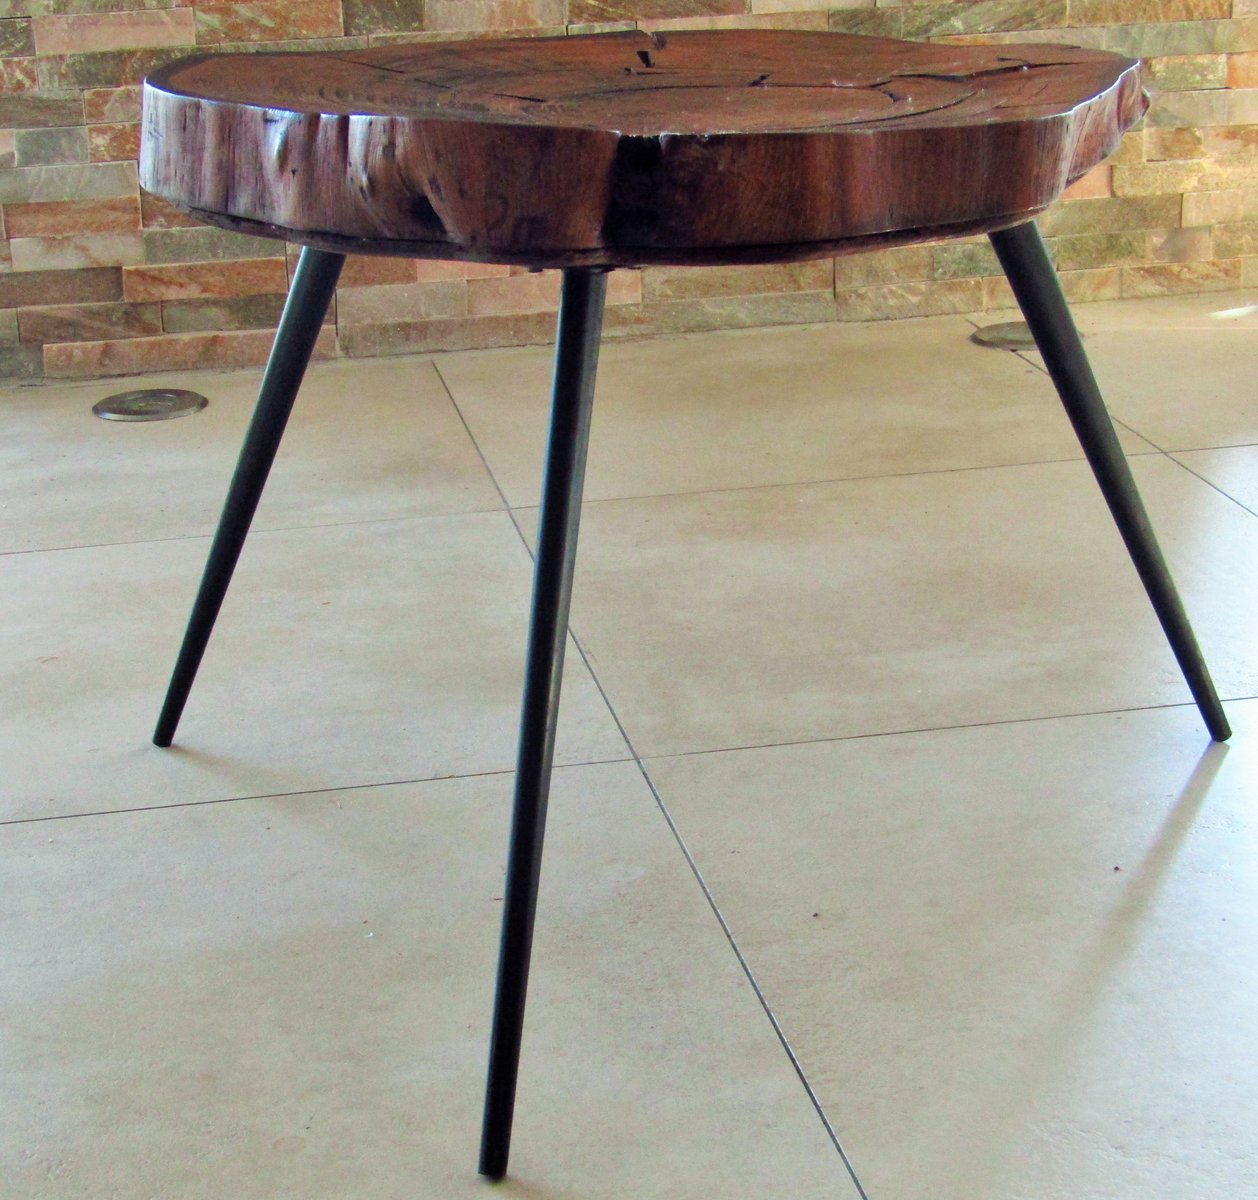 Tree Coffee Table Dk3: Tree Trunk Coffee Table, 1950s For Sale At Pamono